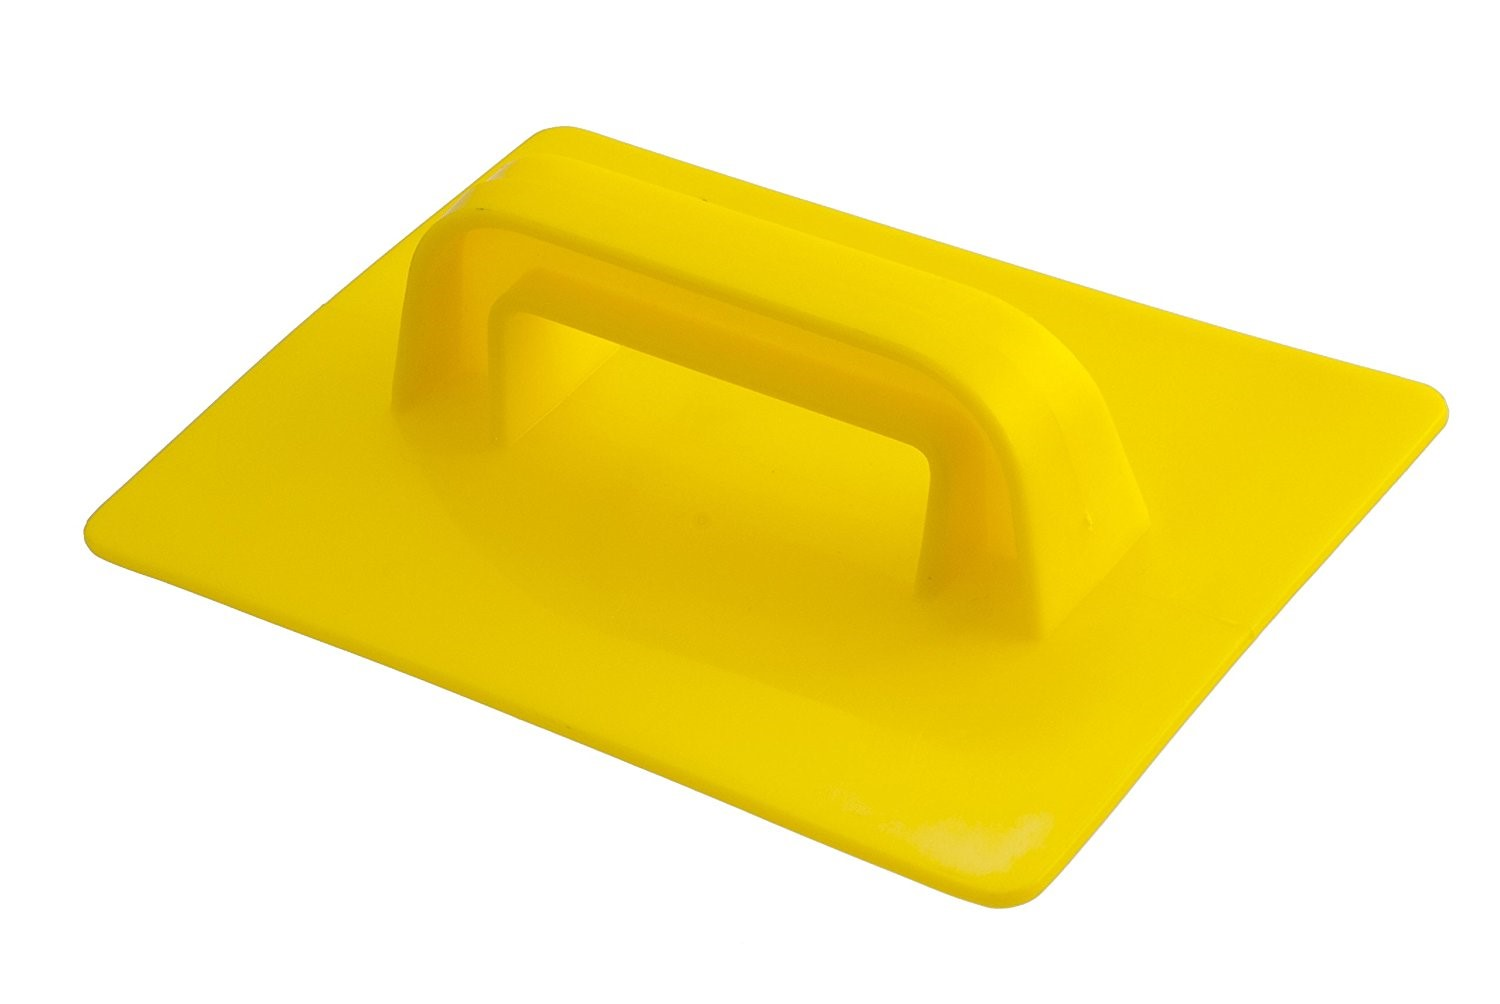 Yellow Plastic Trowel To Taste Themes